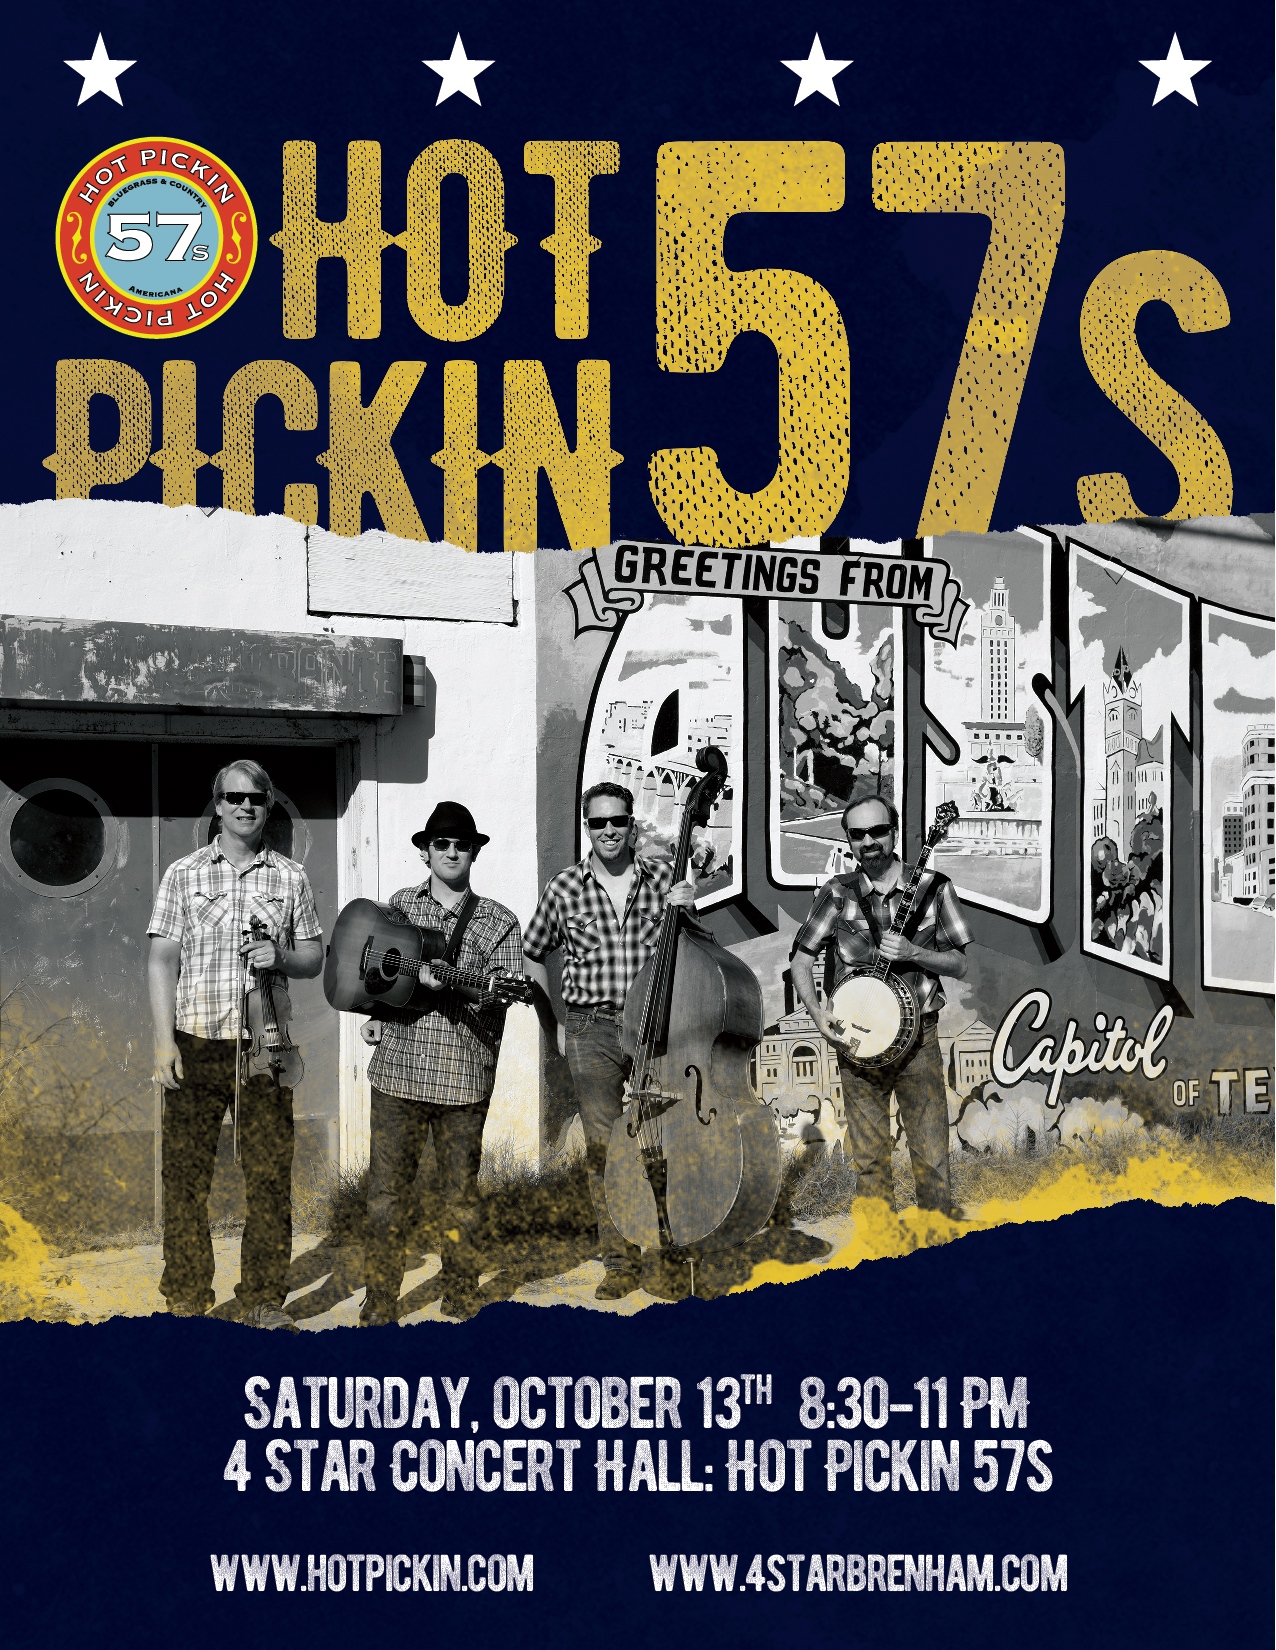 Hot Pickin 57s play 4 Star Concert Hall